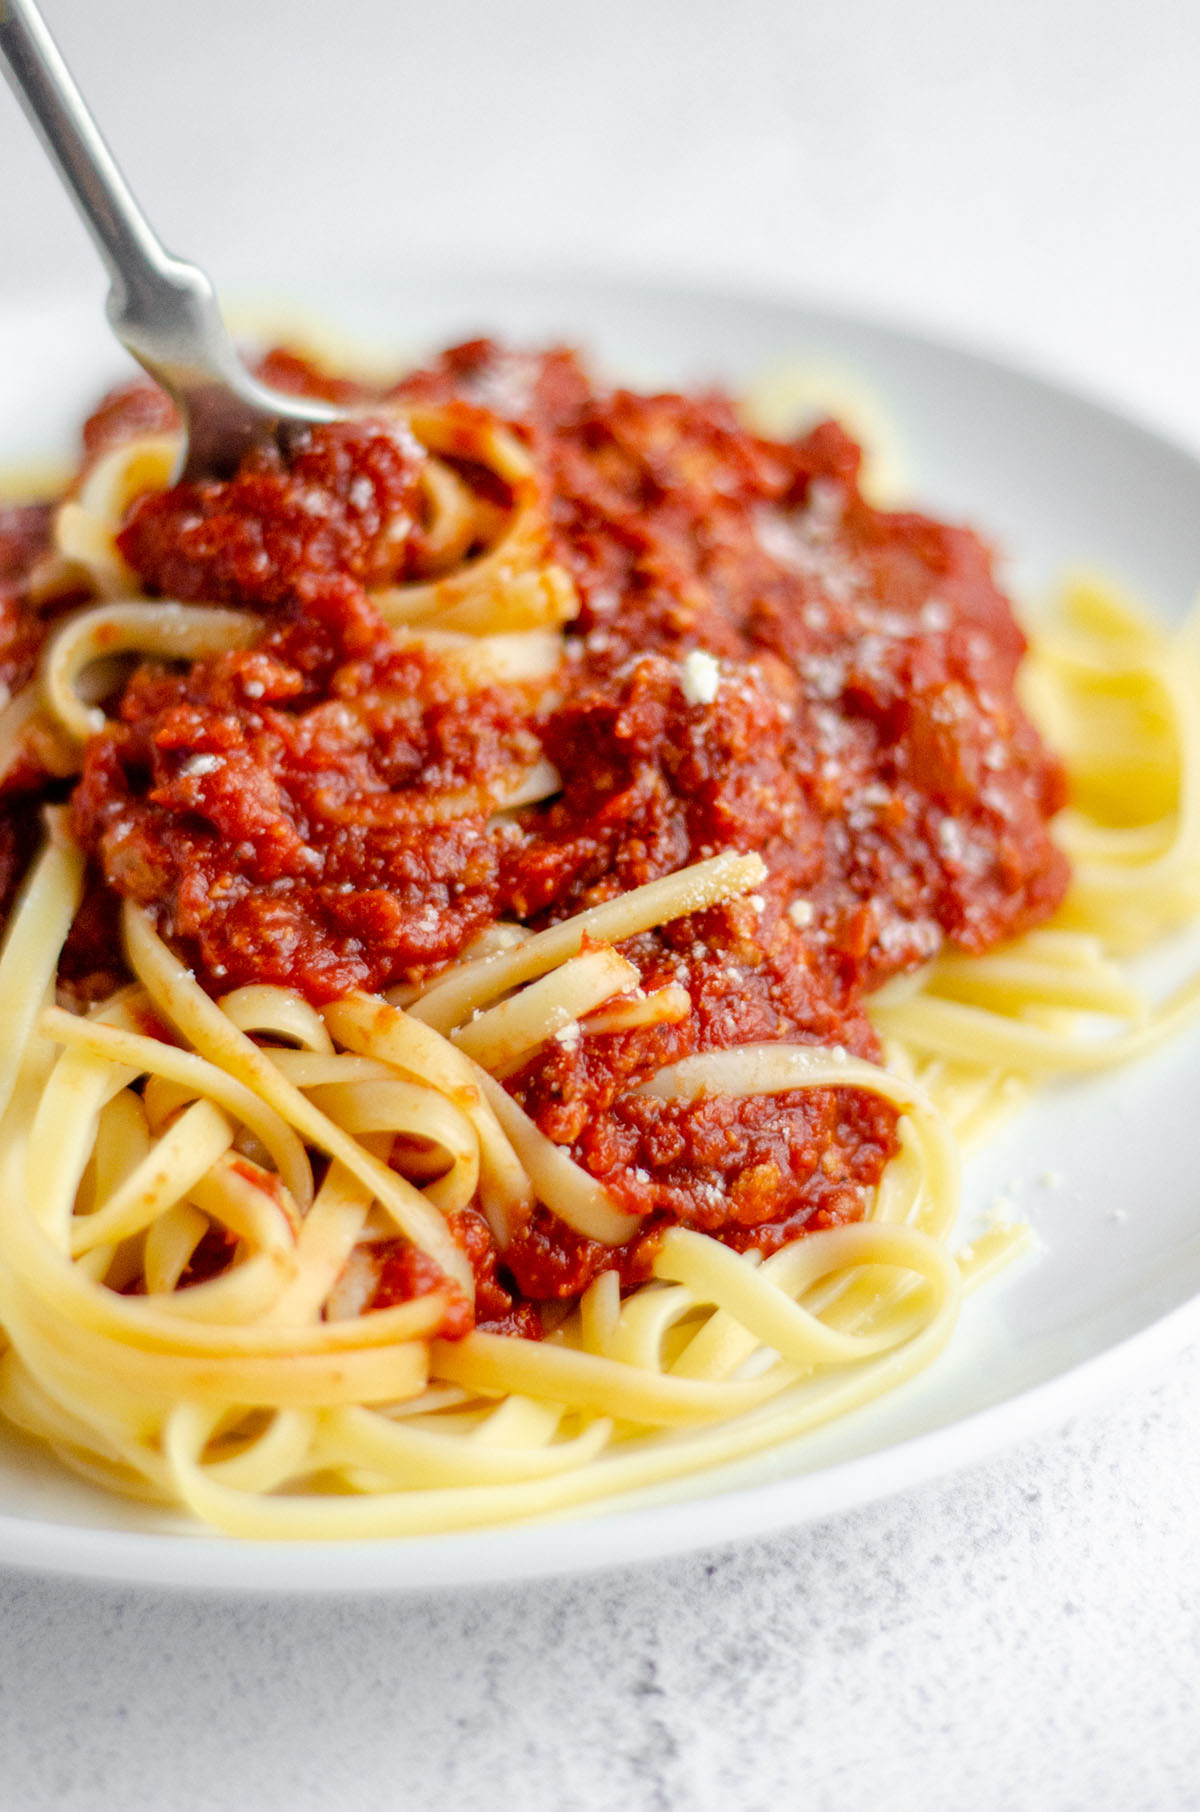 plate of spaghetti with meat sauce with a fork twirling some pasta